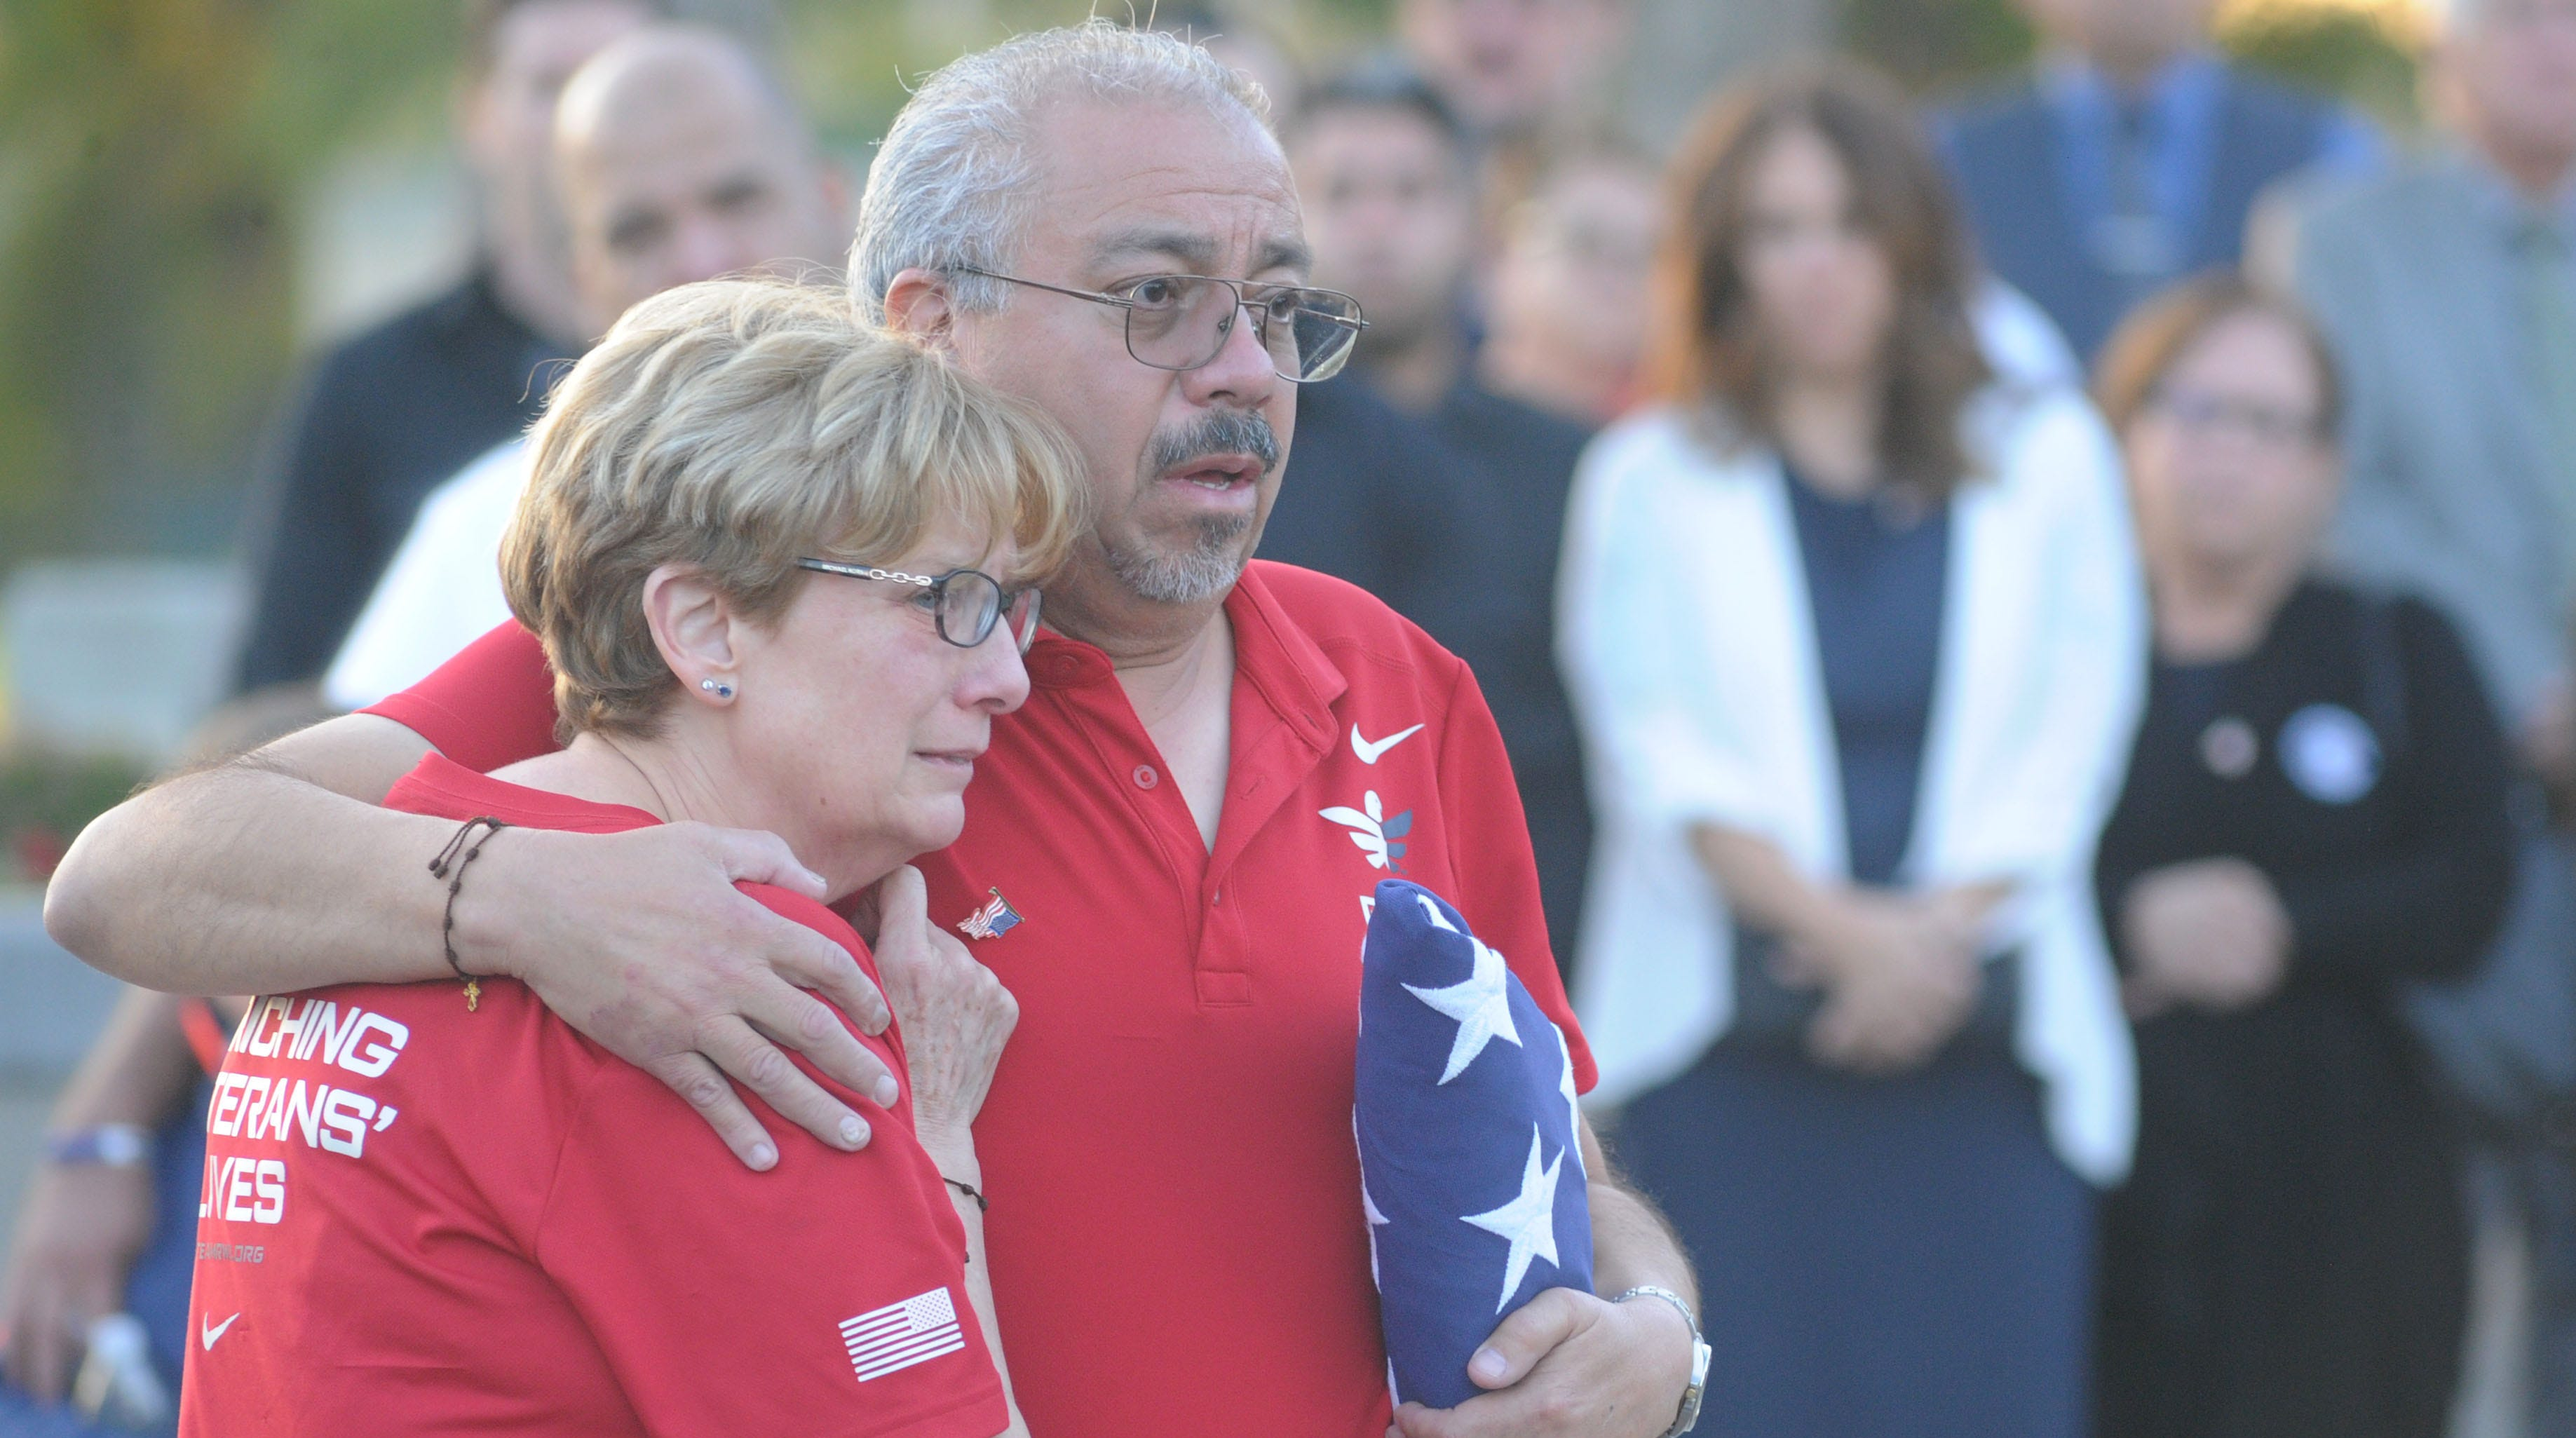 Elsa Manrique and her husband, Mario Manrique, watch the casket of their son  Daniel Manrique being taken to the hearse at Calvary Community Church. Dan Manrique, a Marine Corps veteran, was one of the 12 people slain in the Borderline Bar & Grill shooting.